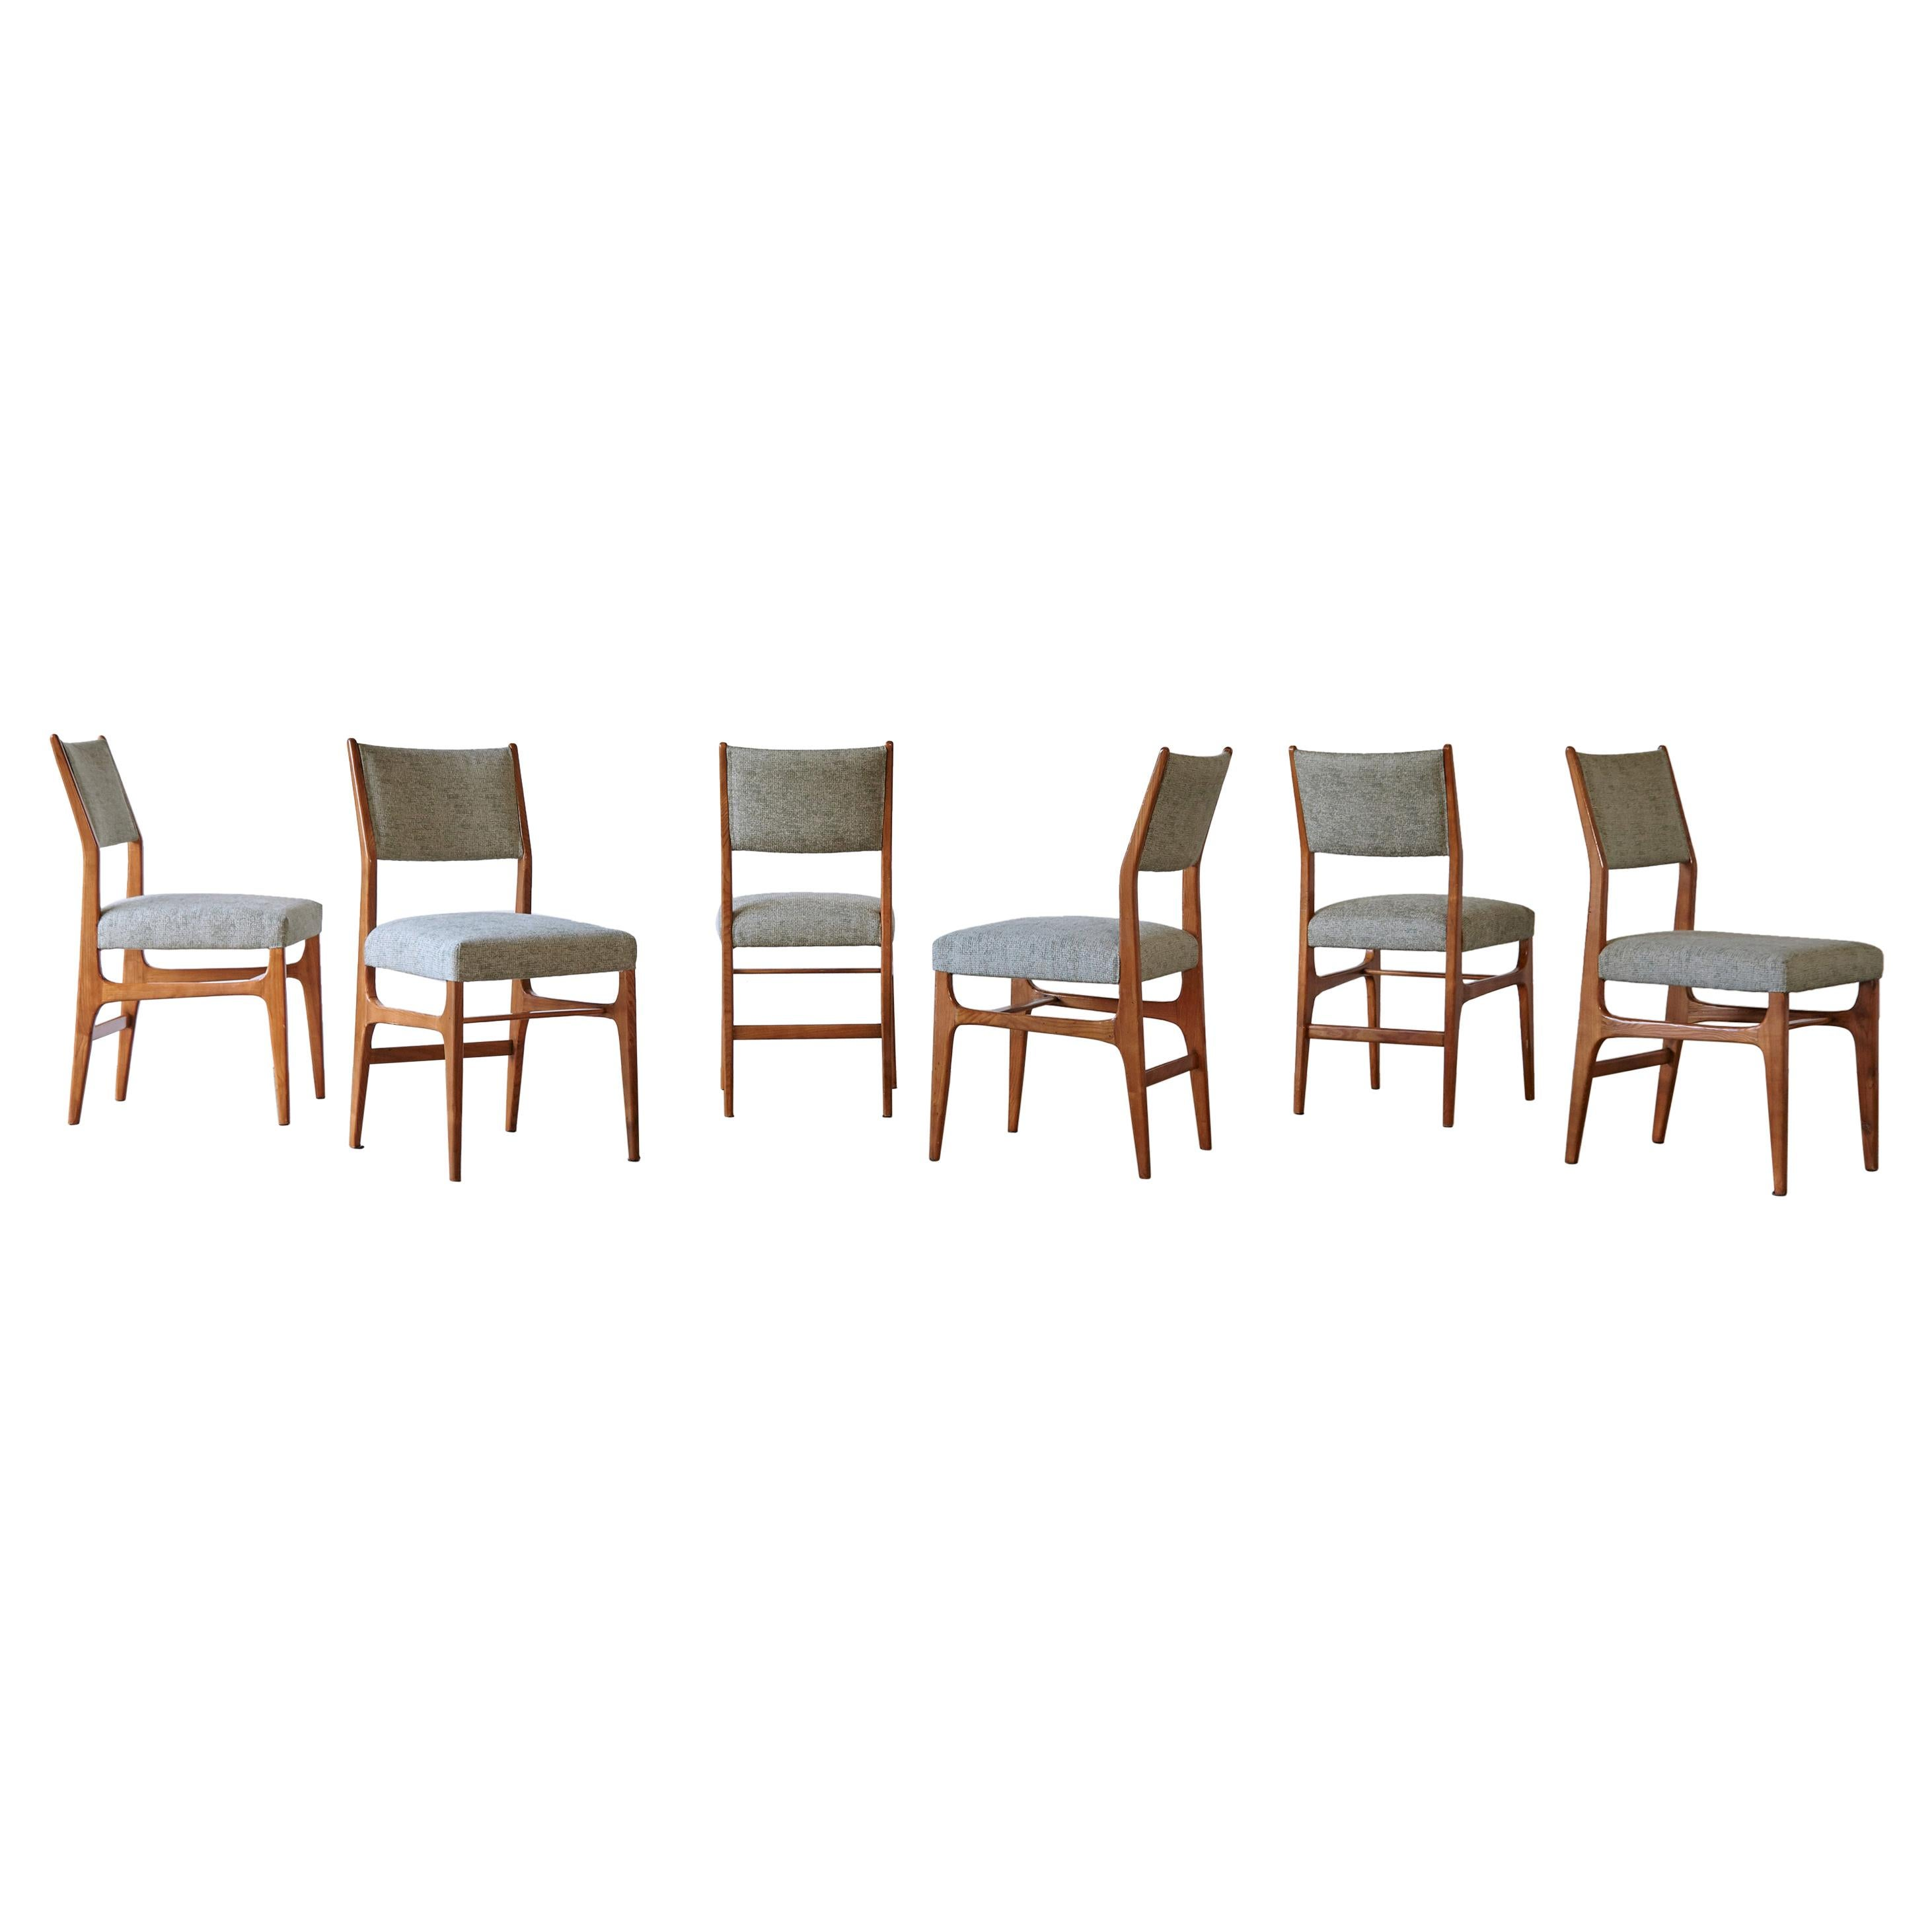 Set of 6 Rare Gio Ponti 602 Dining Chairs for Cassina, Italy, 1950s